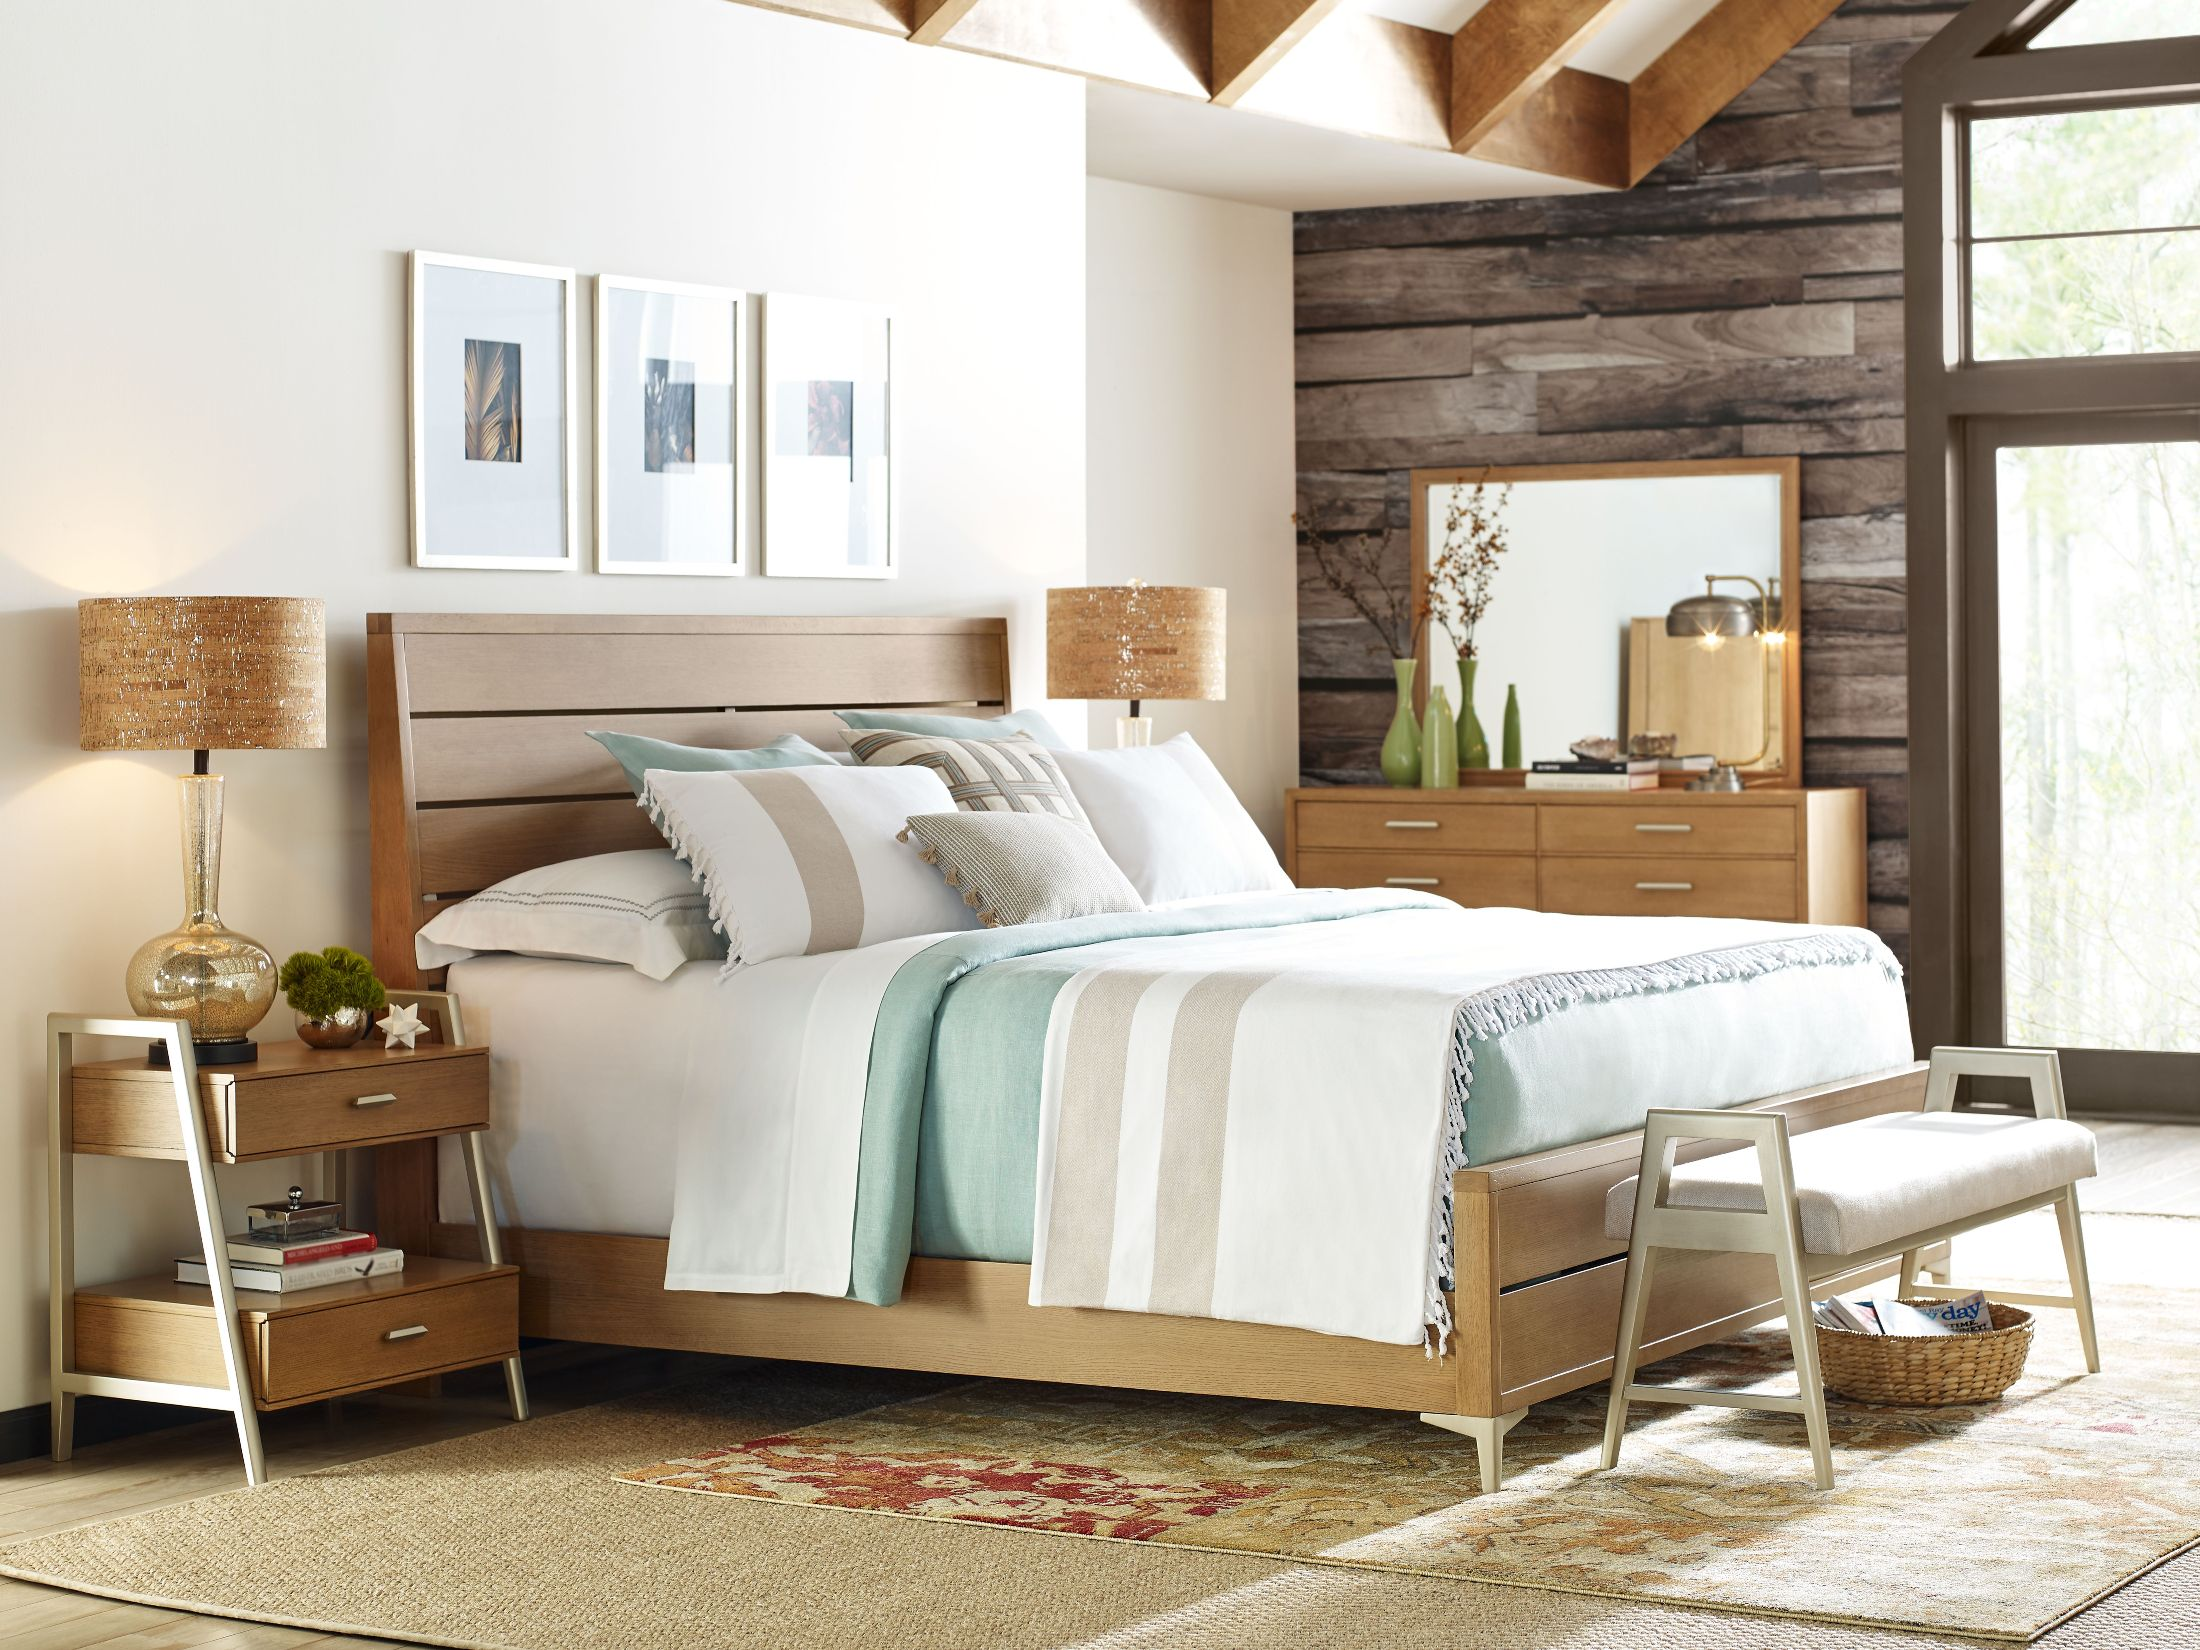 Legacy Classic Hygge Cashmere Ladder Back Panel Bedroom Set By Rachael Ray Hygge Collection 5